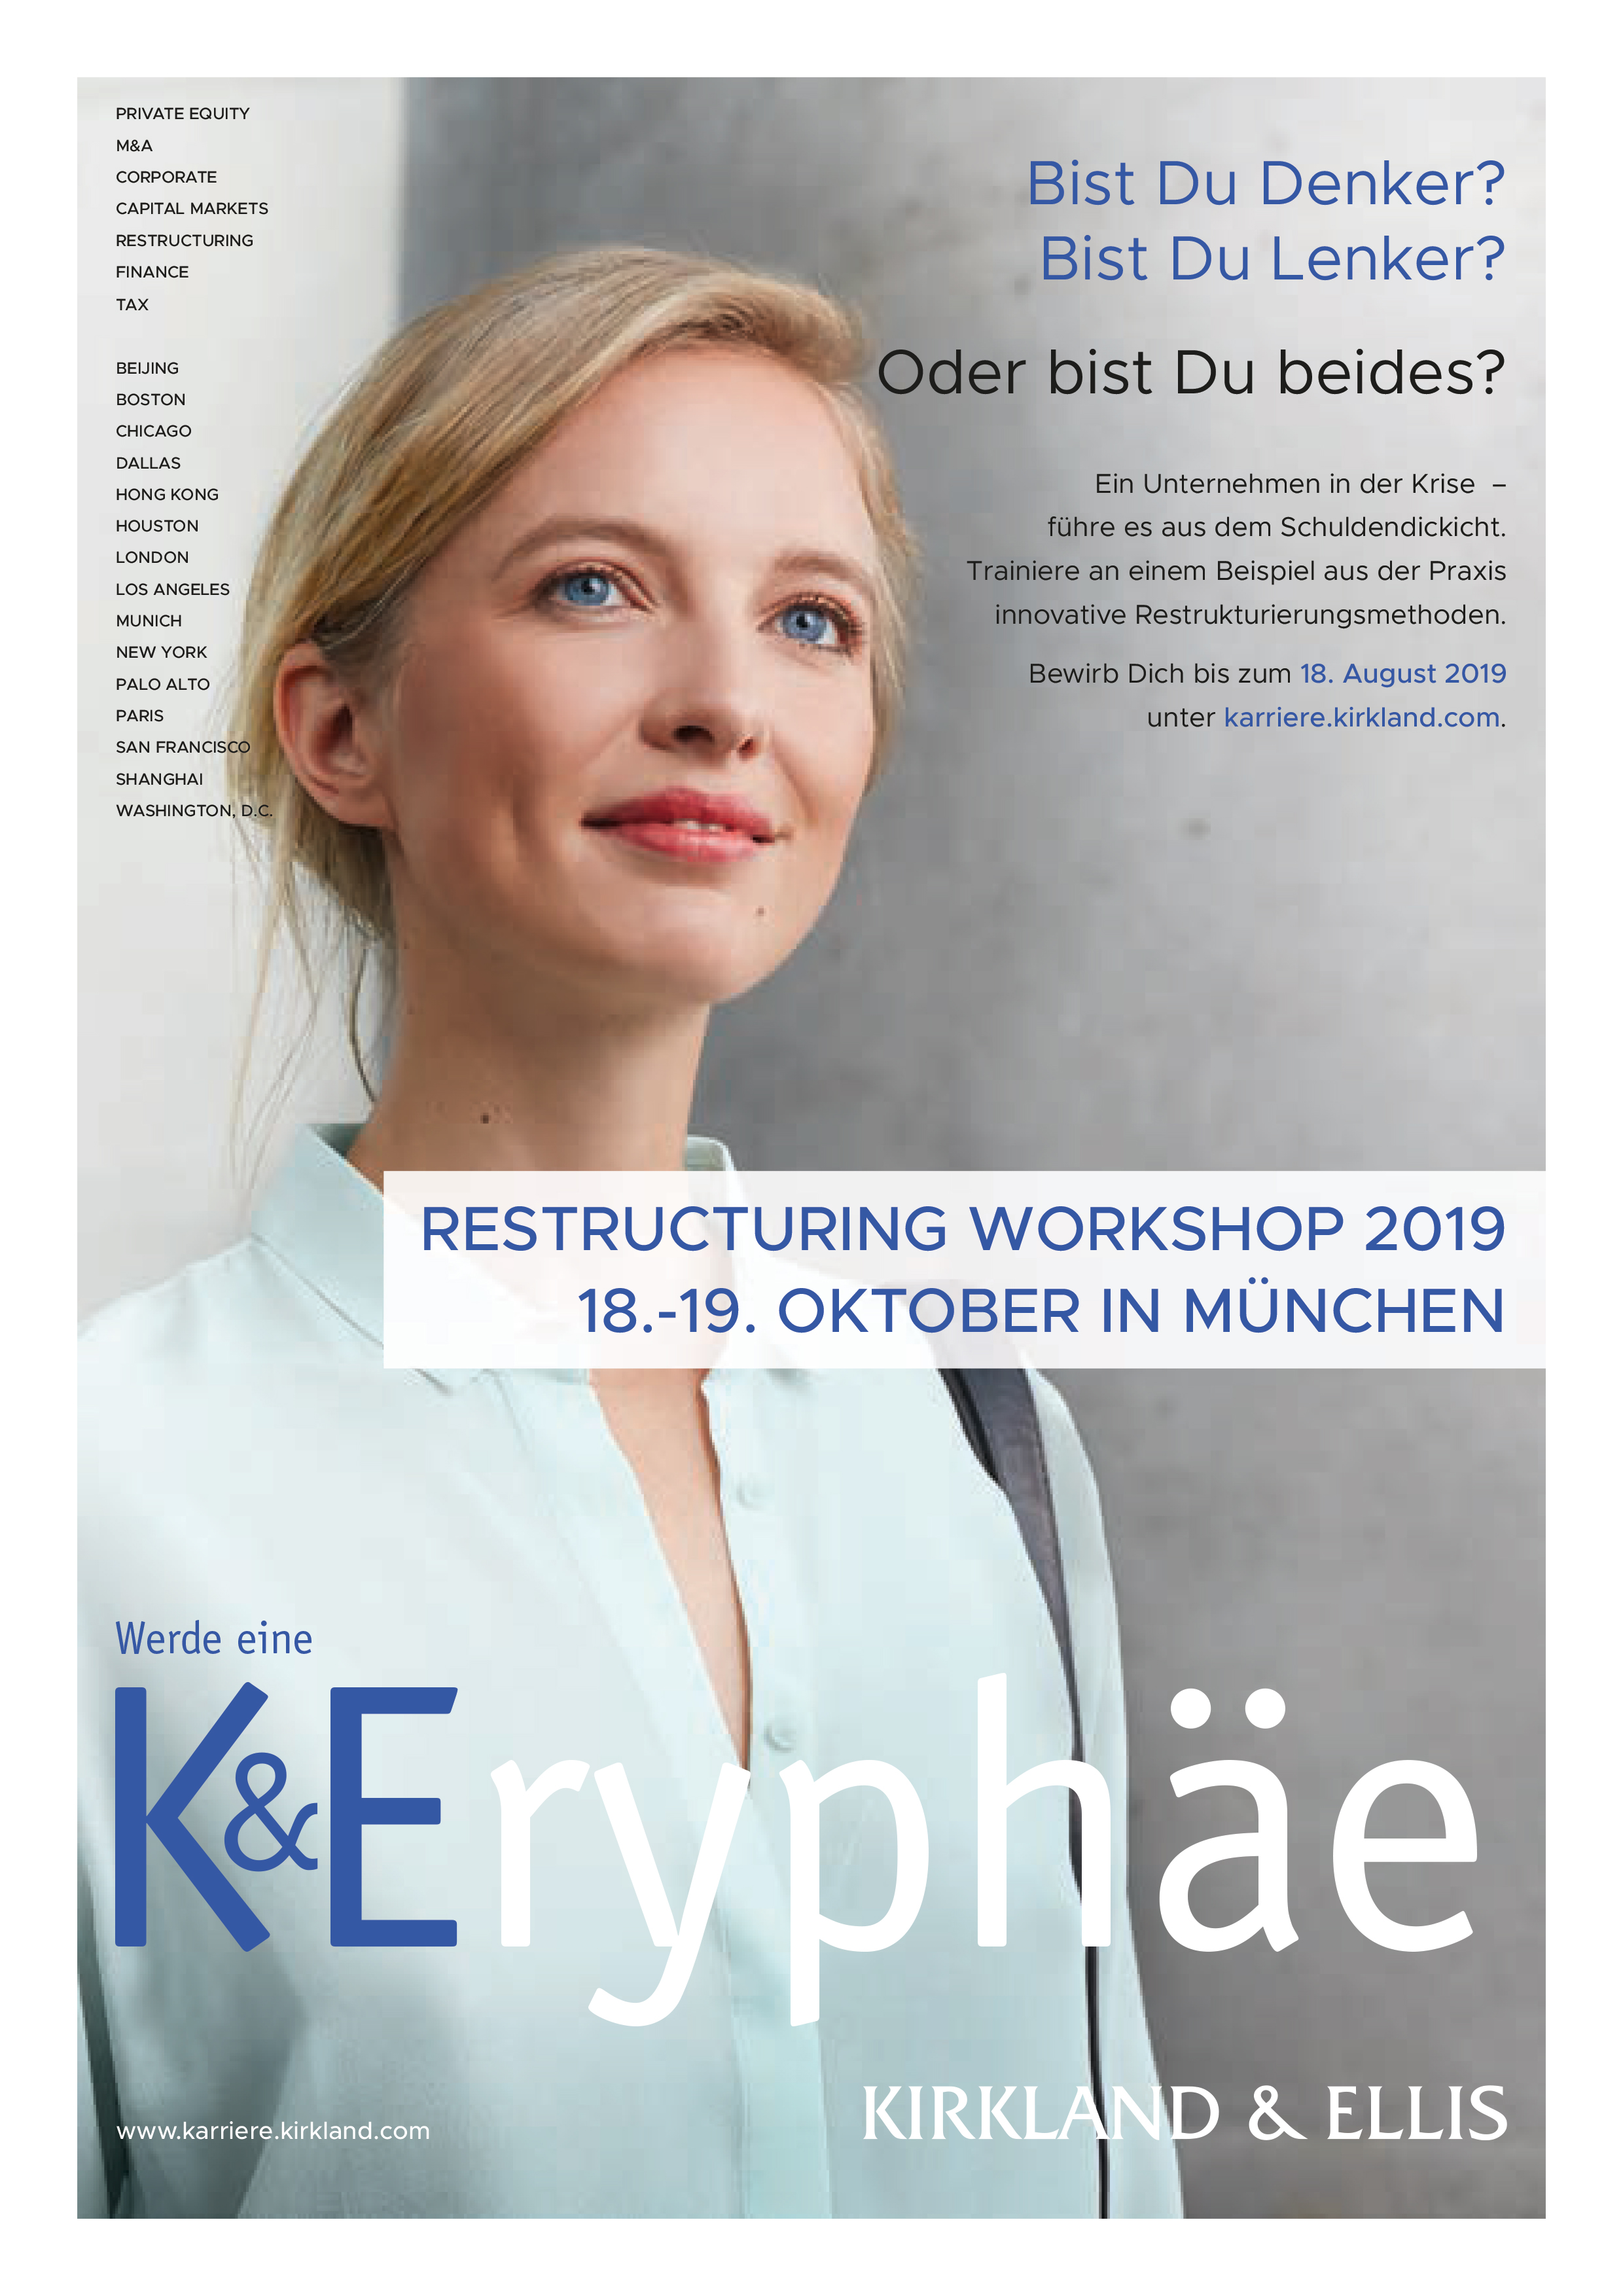 Kirkland & Ellis - Restructuring Workshop am 18. und 19. Oktober 2019